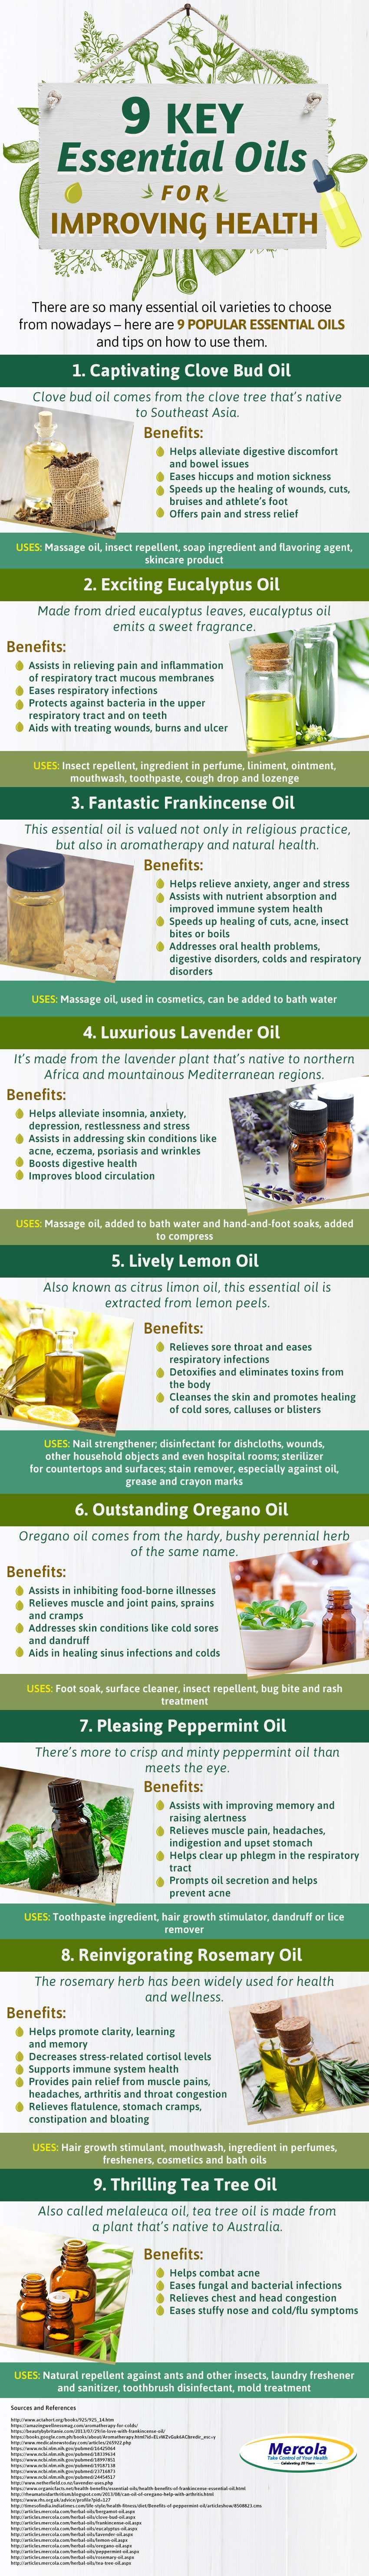 9 Key Essential Oils For Everyday Use Infographic